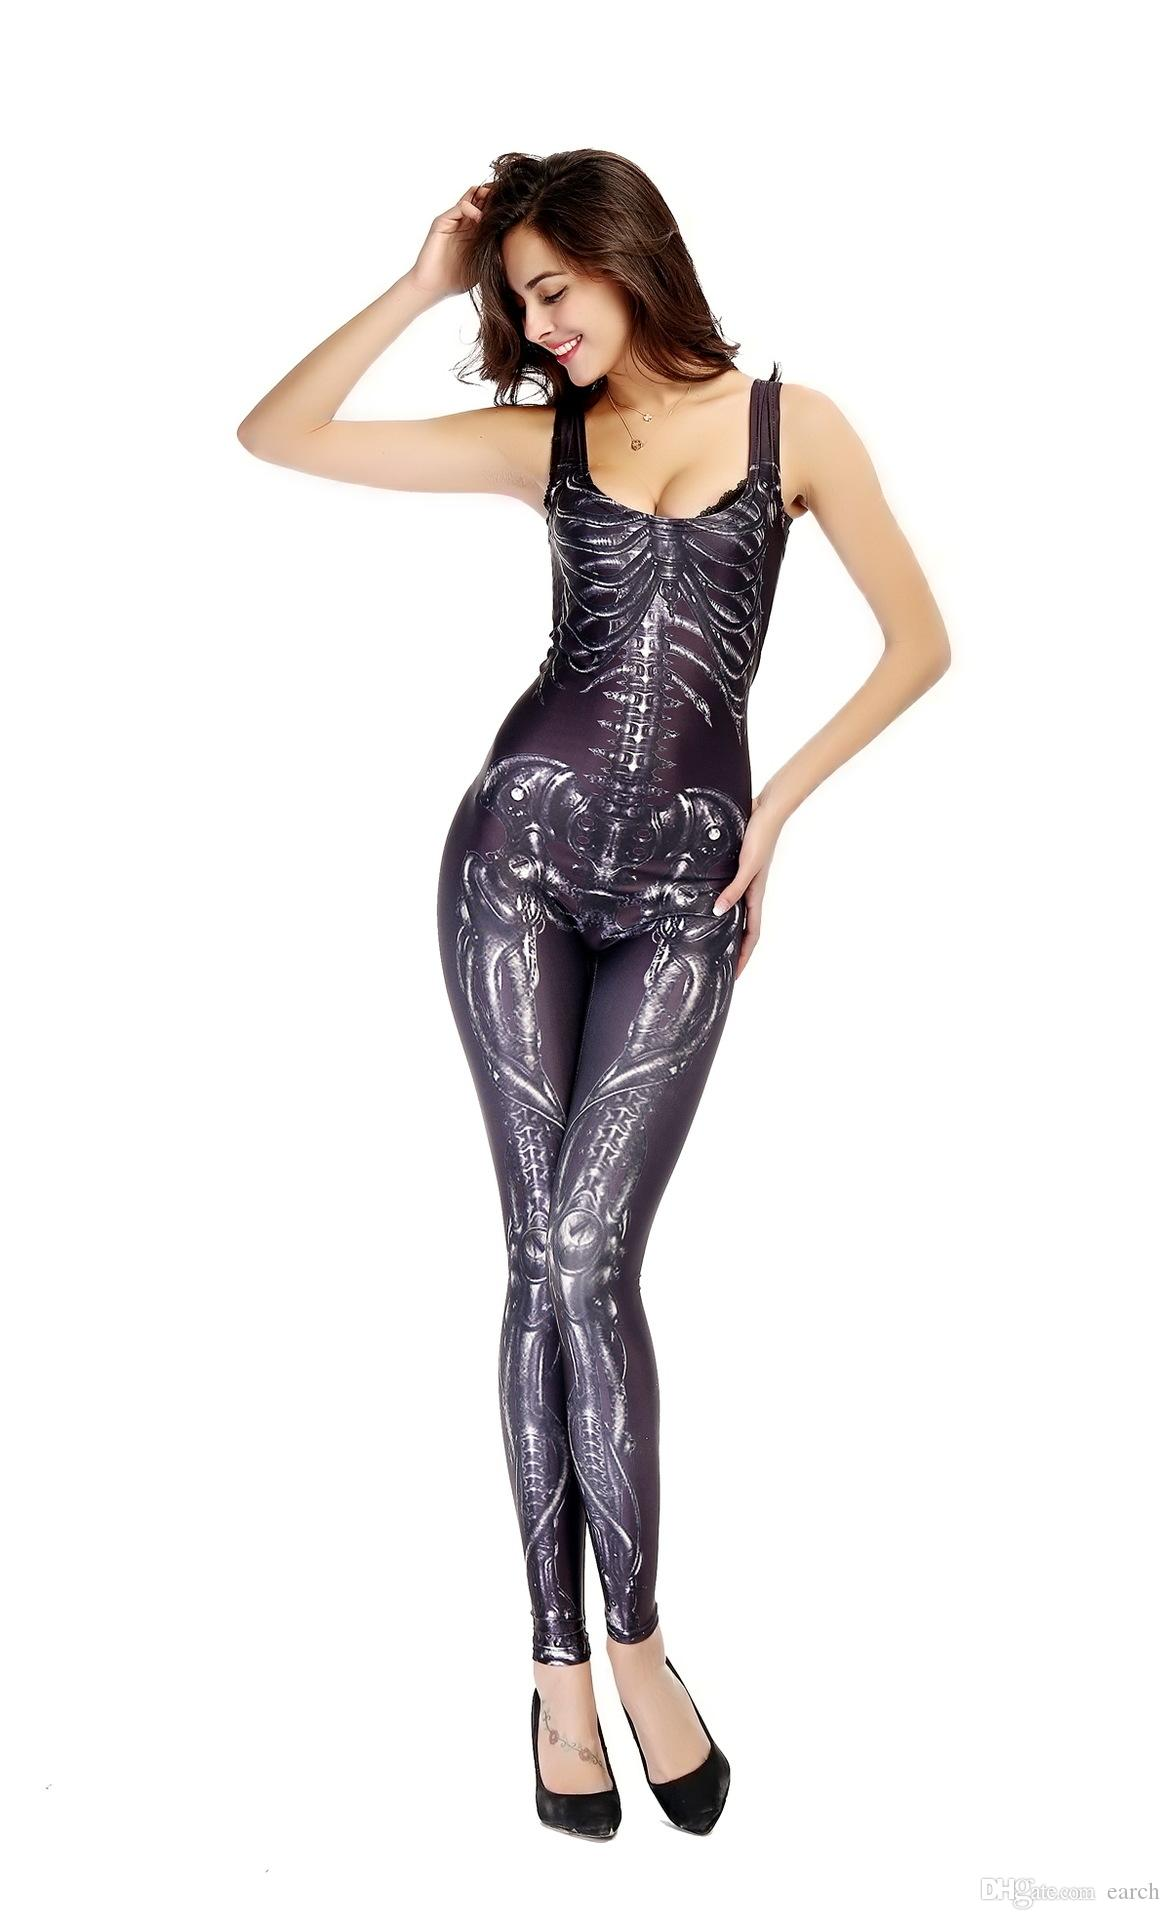 New Halloween Costume jumpsuit Catsuit Costumes human skeleton print outfit locomotive suit cosplay Sexy costumes for ...  sc 1 st  DHgate.com & 2018 New Halloween Costume Jumpsuit Catsuit Costumes Human Skeleton ...